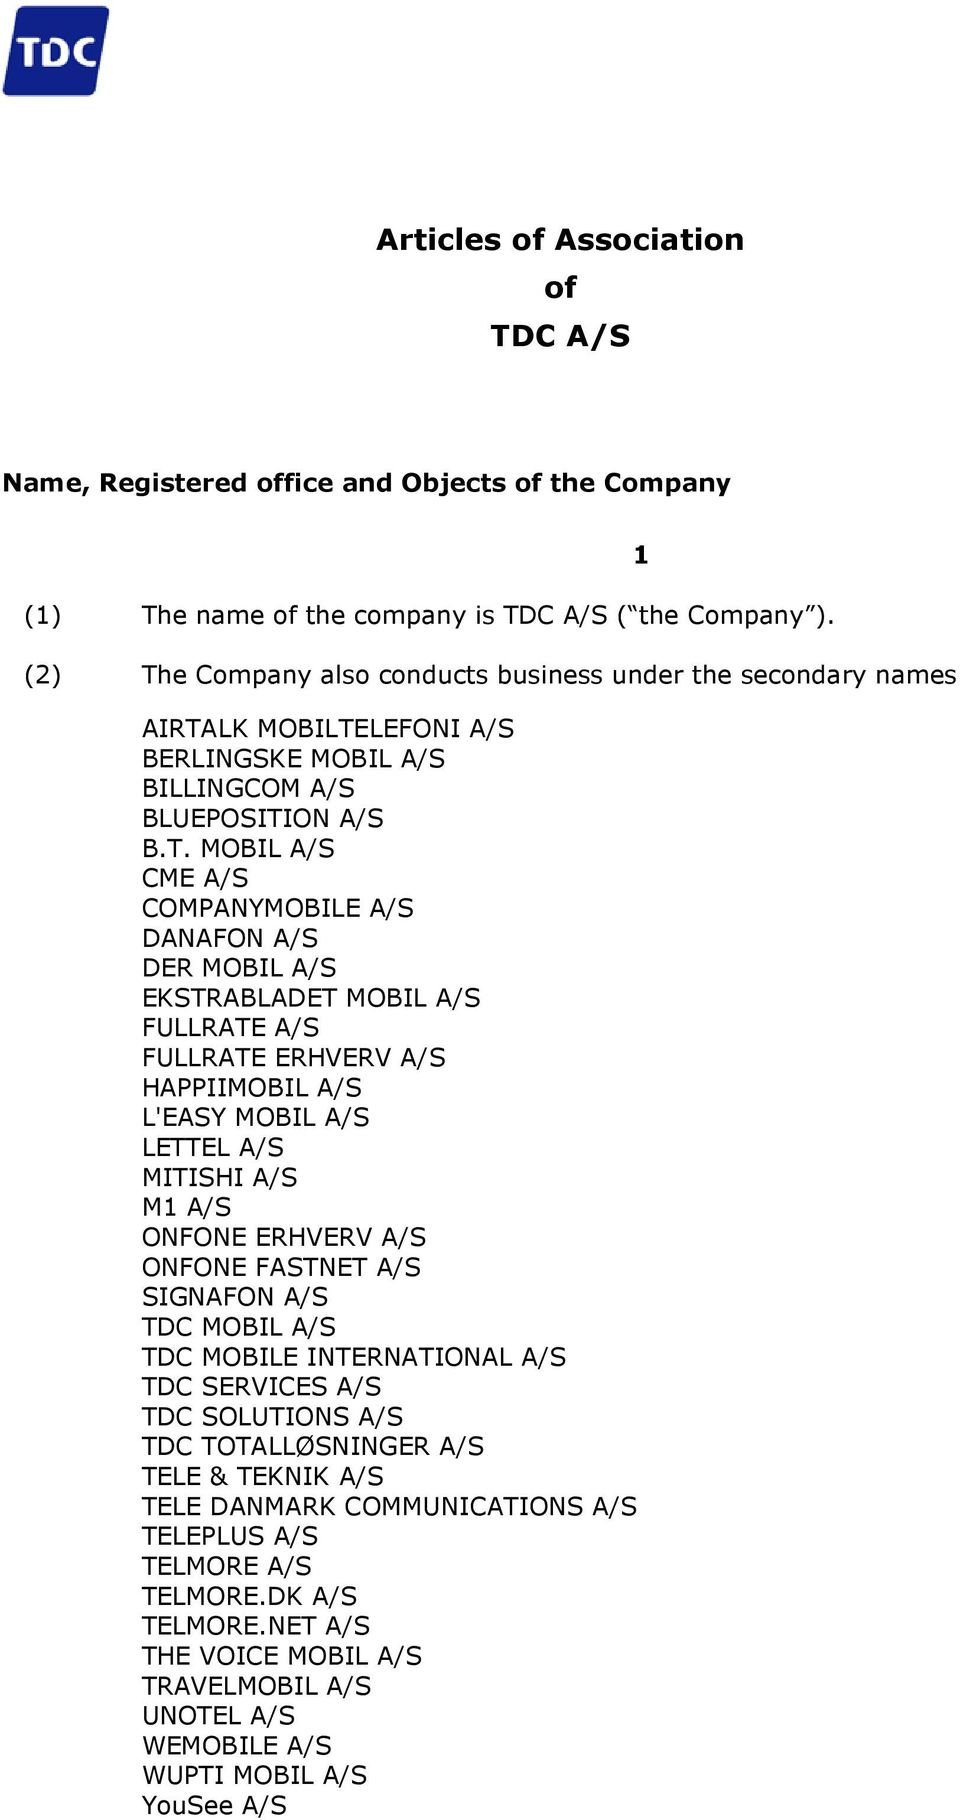 e Company also conducts business under the secondary names AIRTA